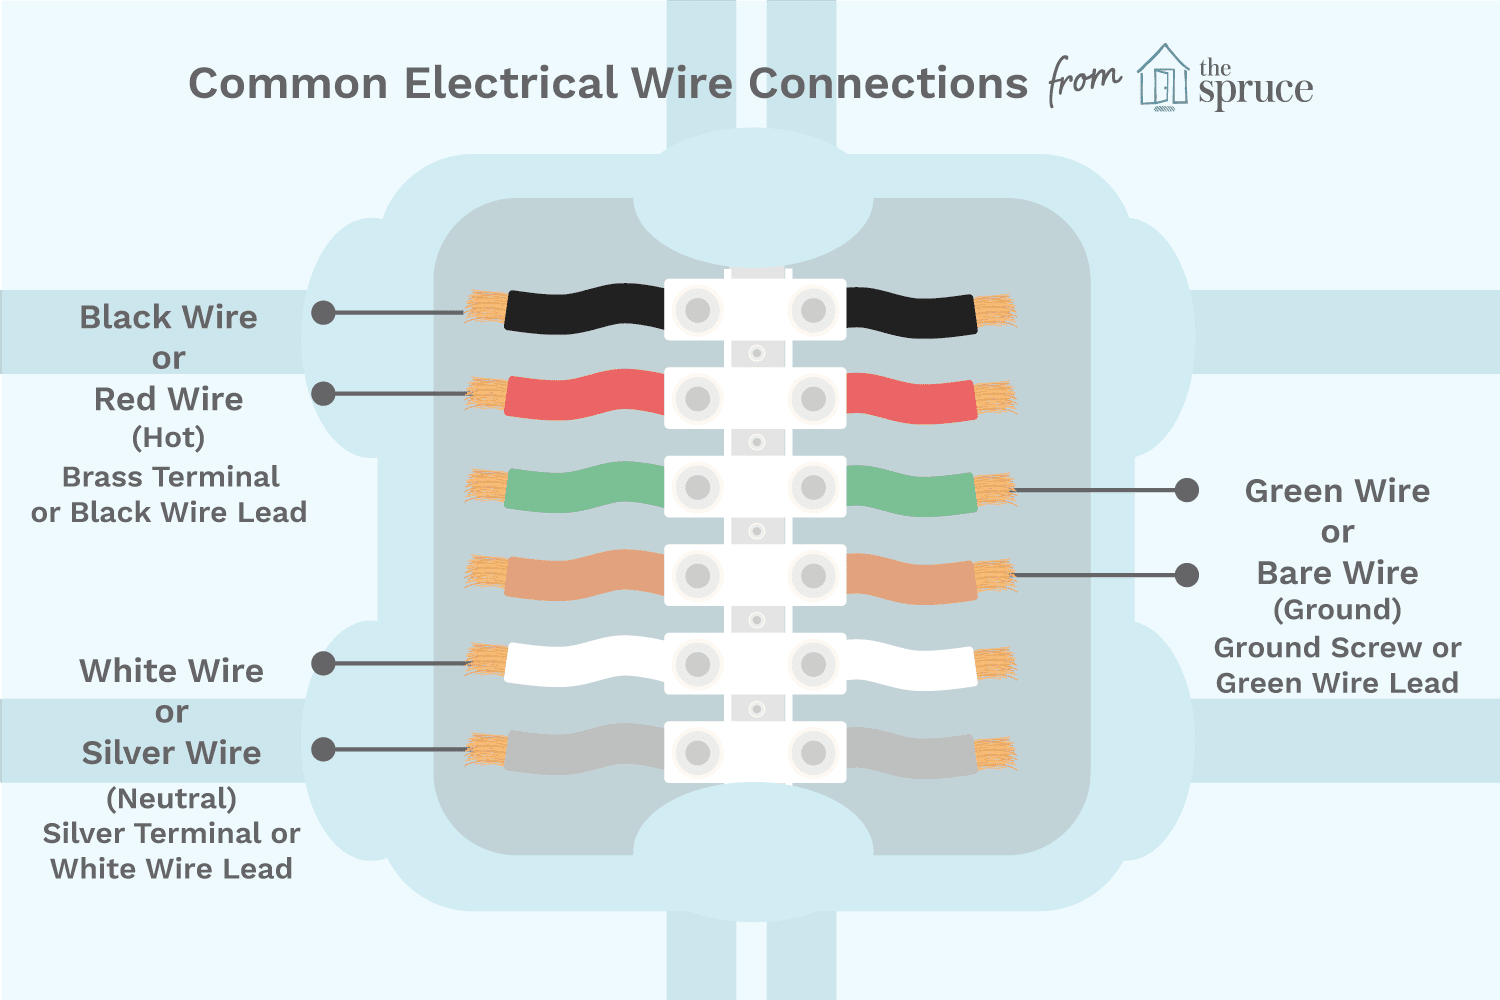 Color Coding Of Electrical Wires And Terminal Screws Wiring In The Home Replace 3 Wire Dryer Cord With 4 Electric